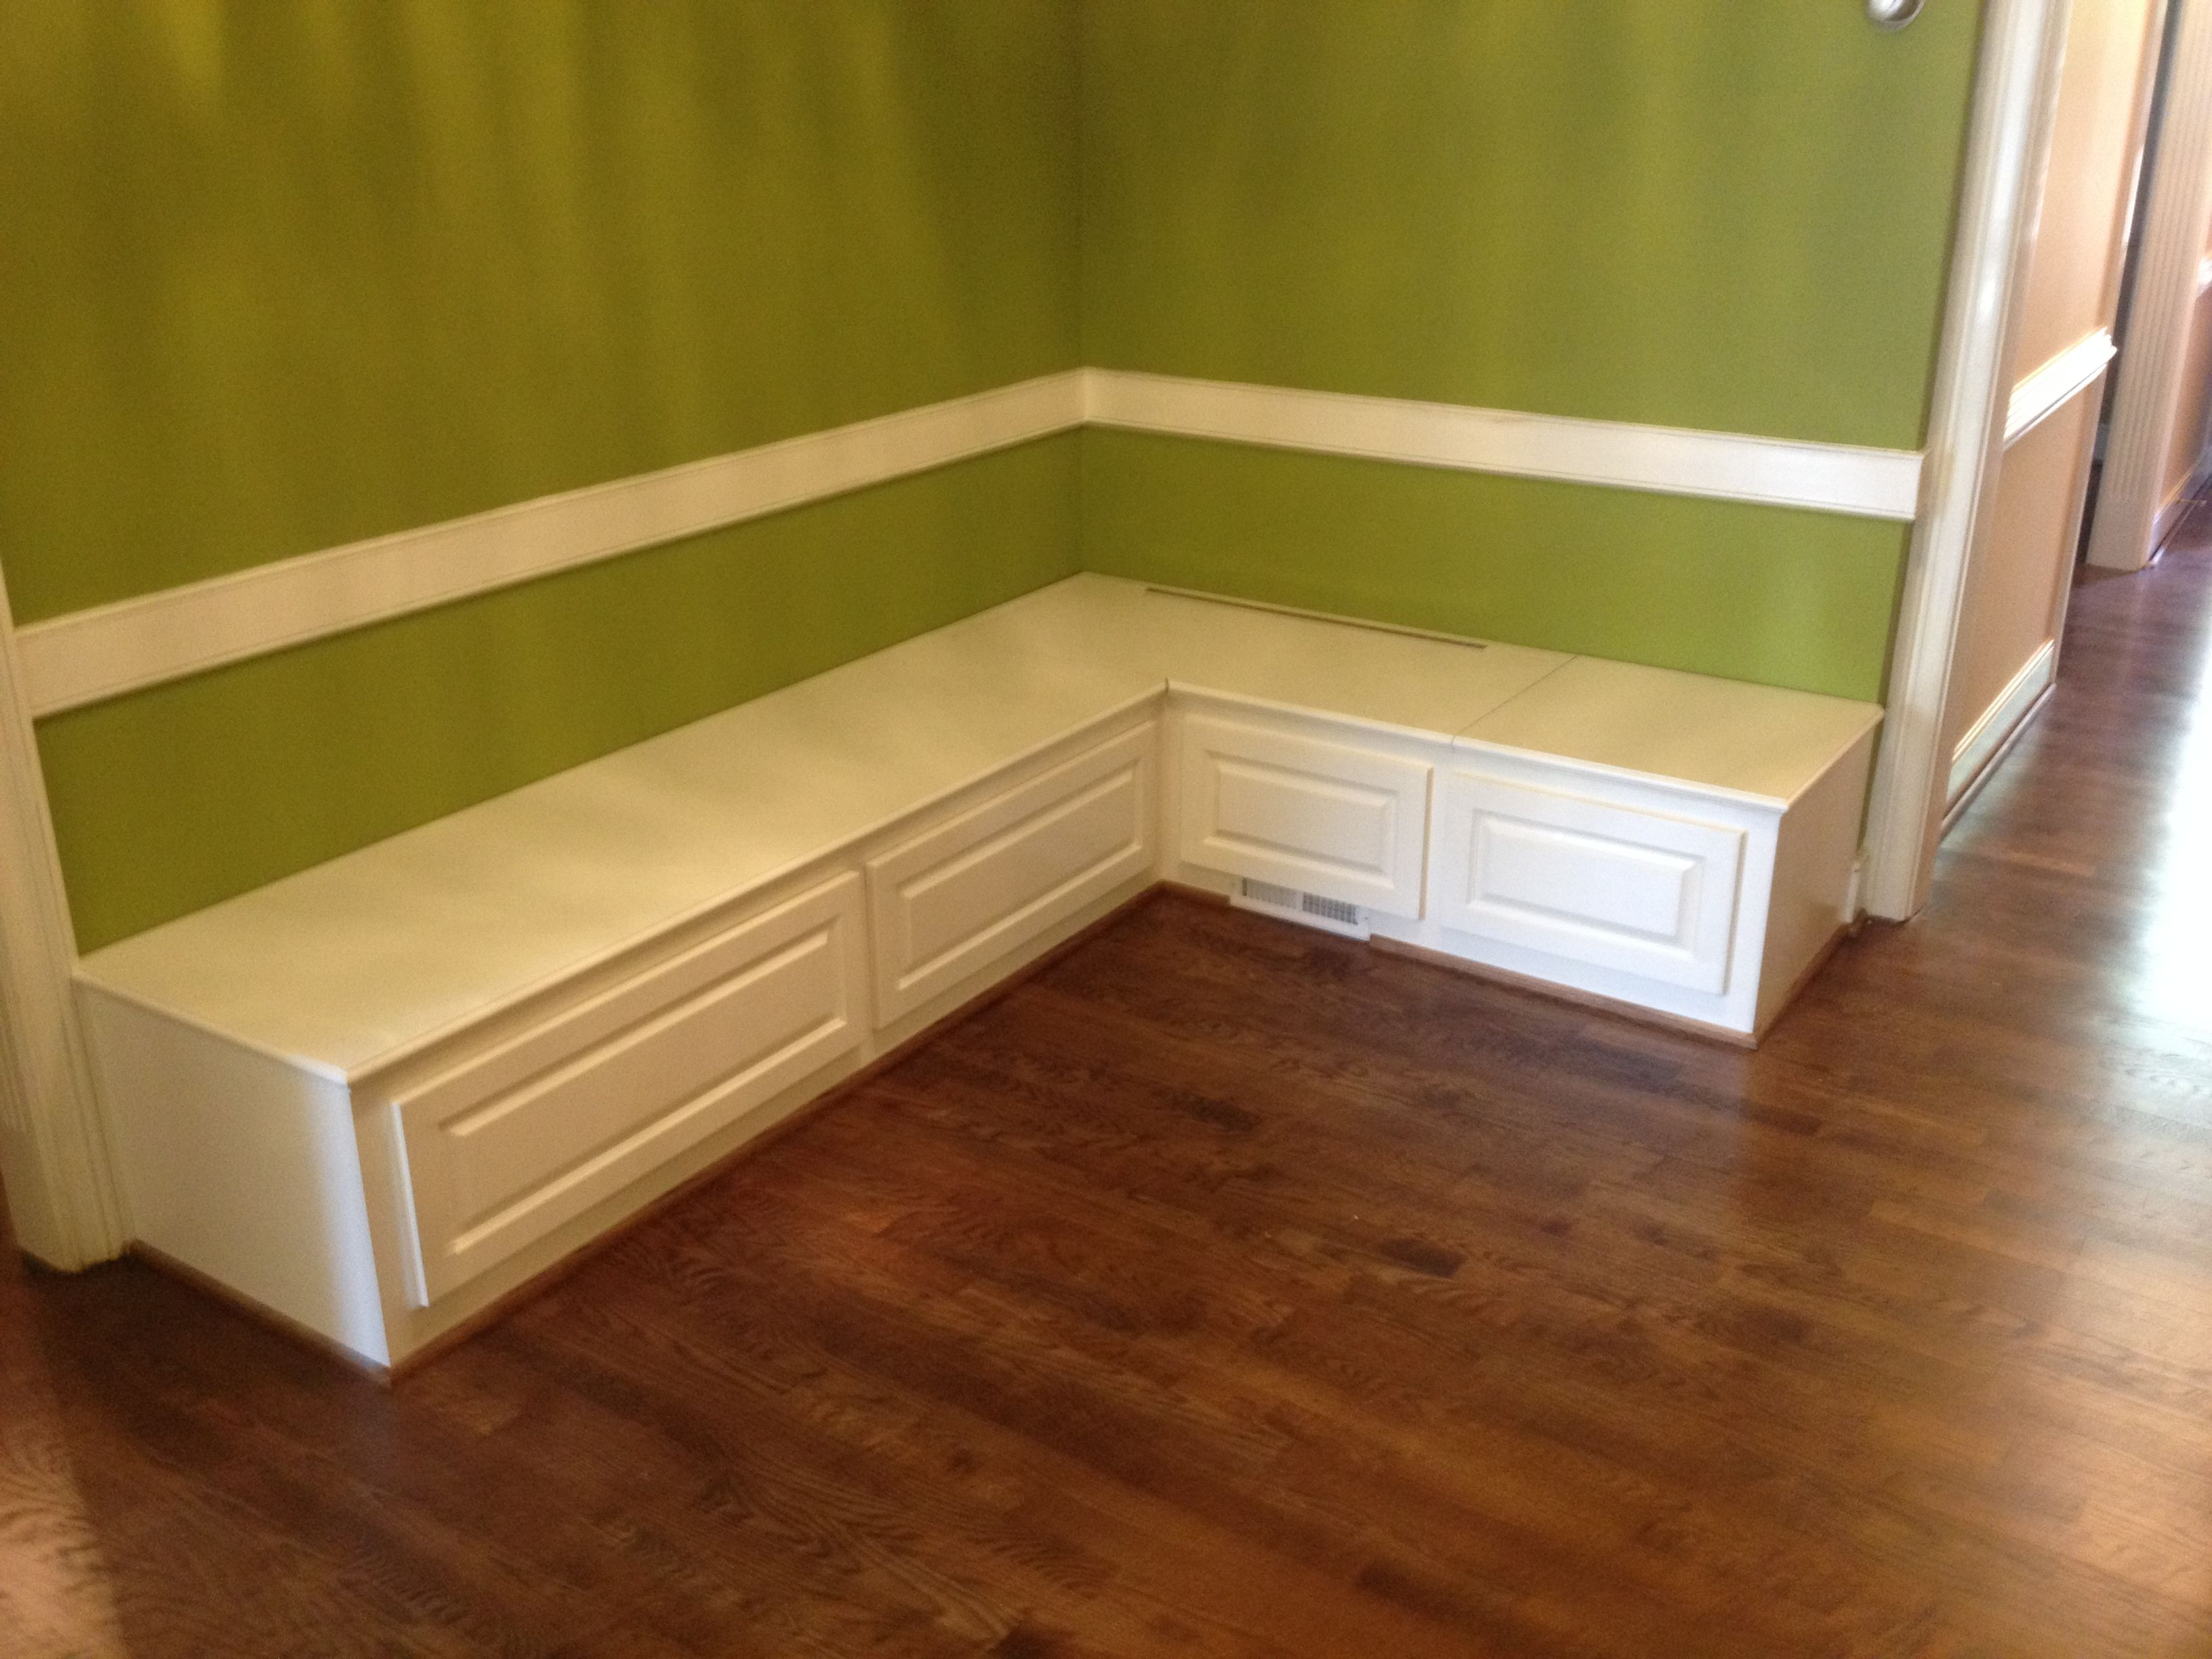 Dining Room Bench Seating  Builtins  Pinterest  Dining Room Glamorous Dining Room Storage Bench Design Ideas